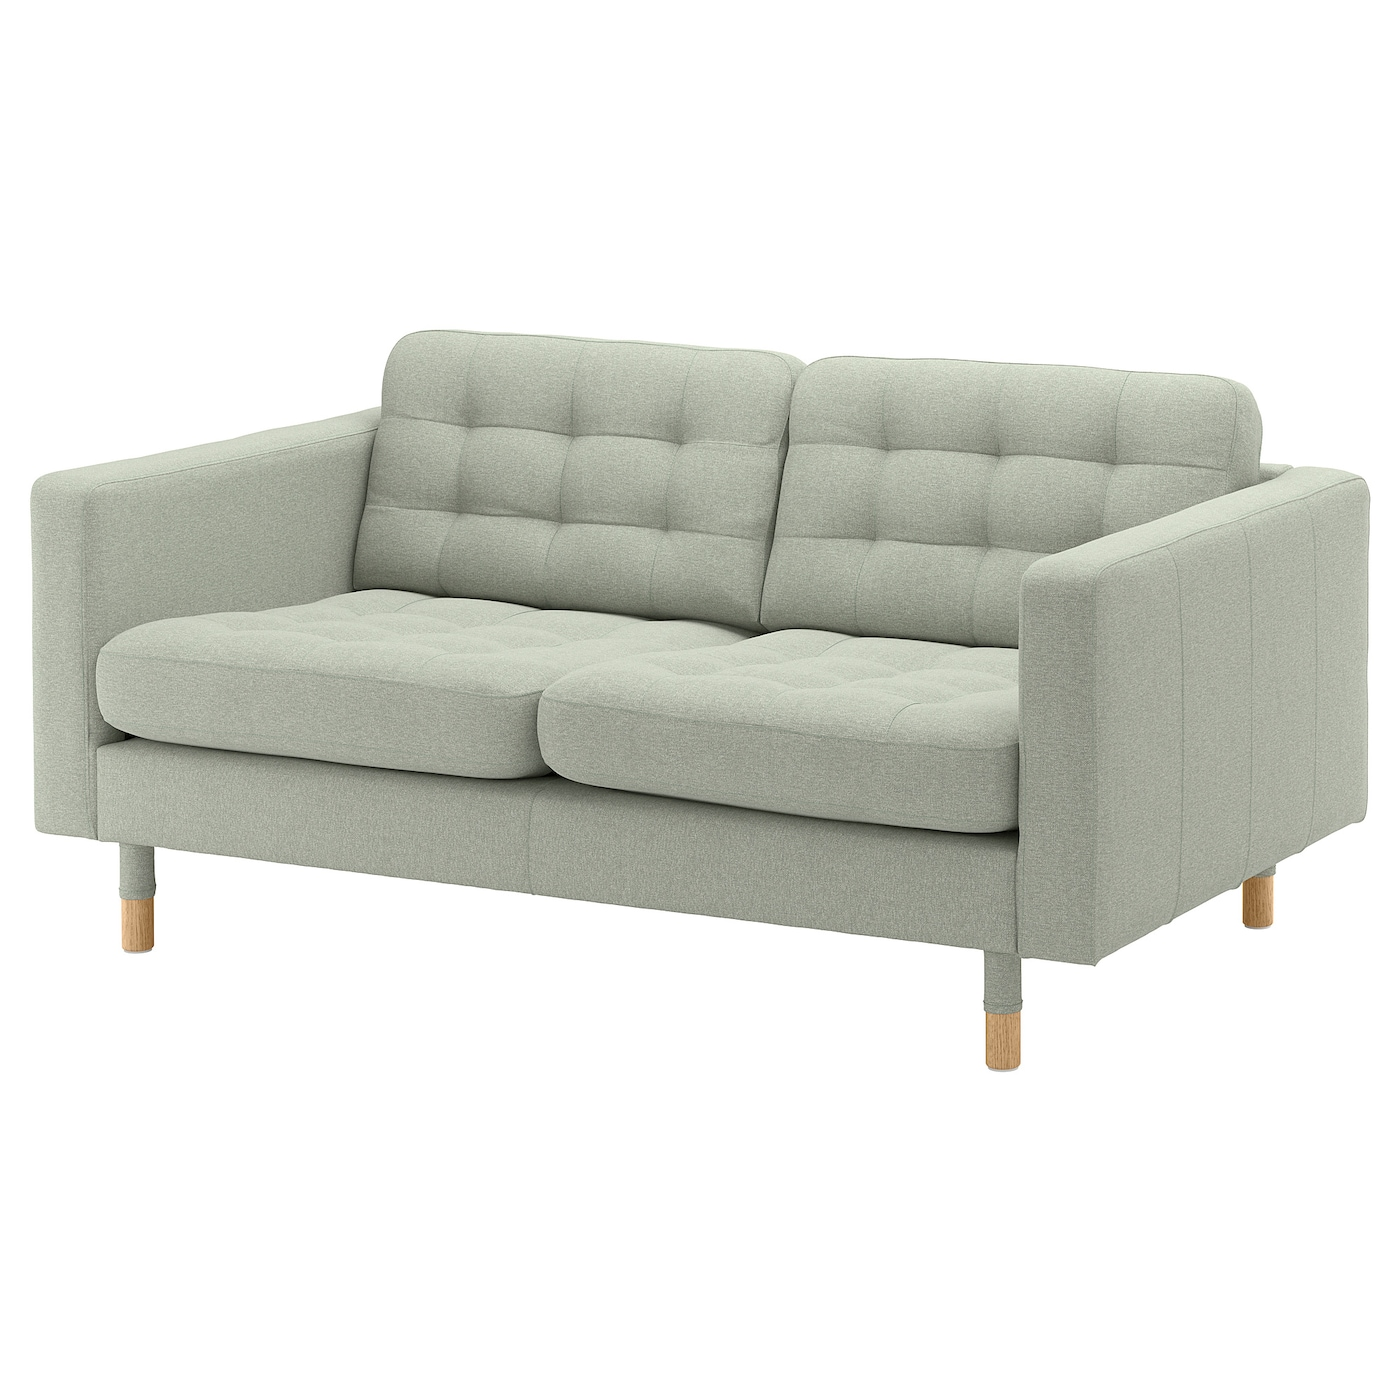 Ikea Landskrona 2 Seat Sofa 10 Year Guarantee Read About The Terms In